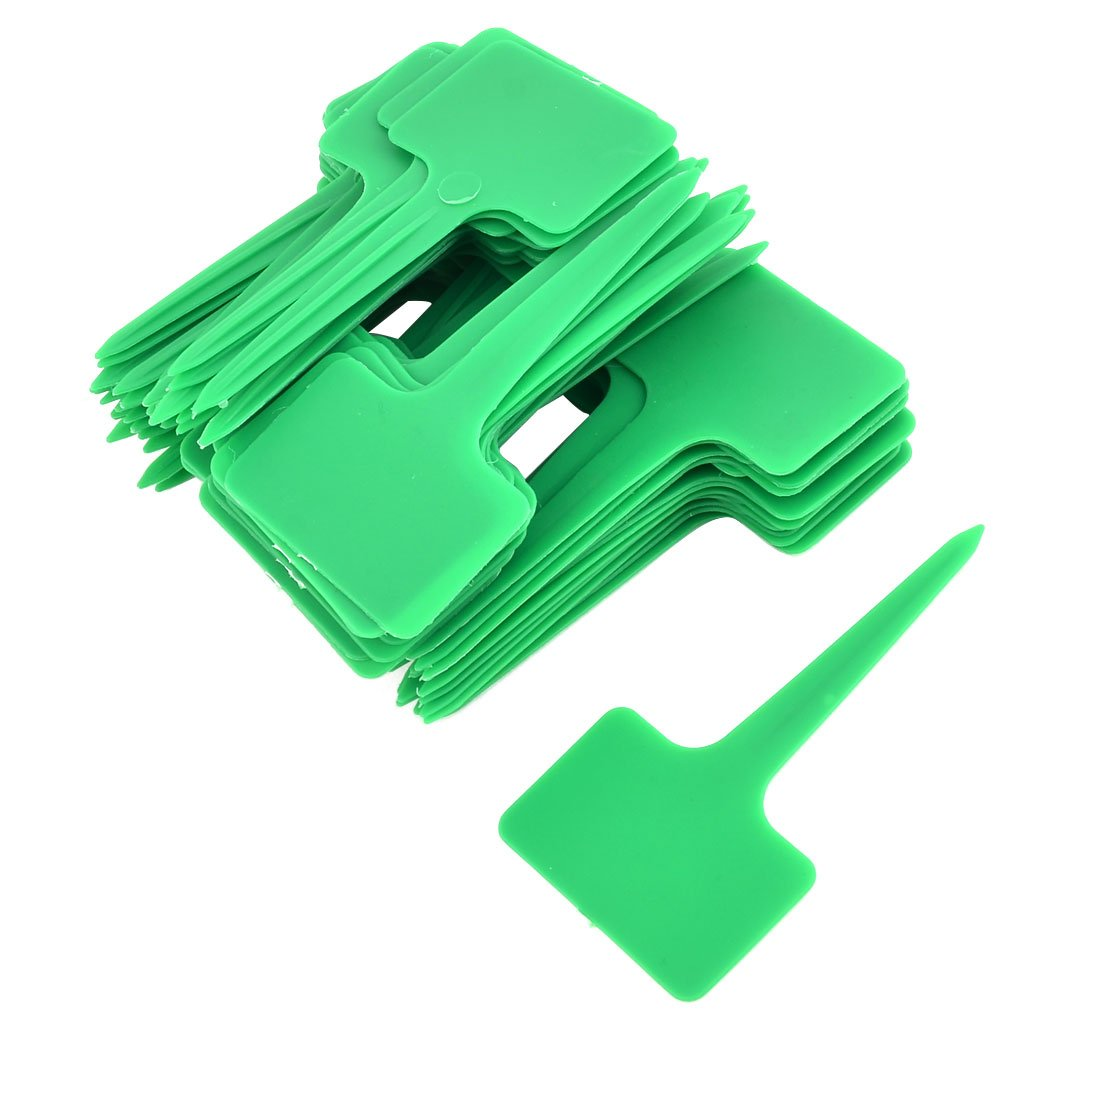 uxcell Plastic Outdoor Garden T Shaped Plant Seed Tag Label Marker Sign 100pcs Green by uxcell (Image #1)